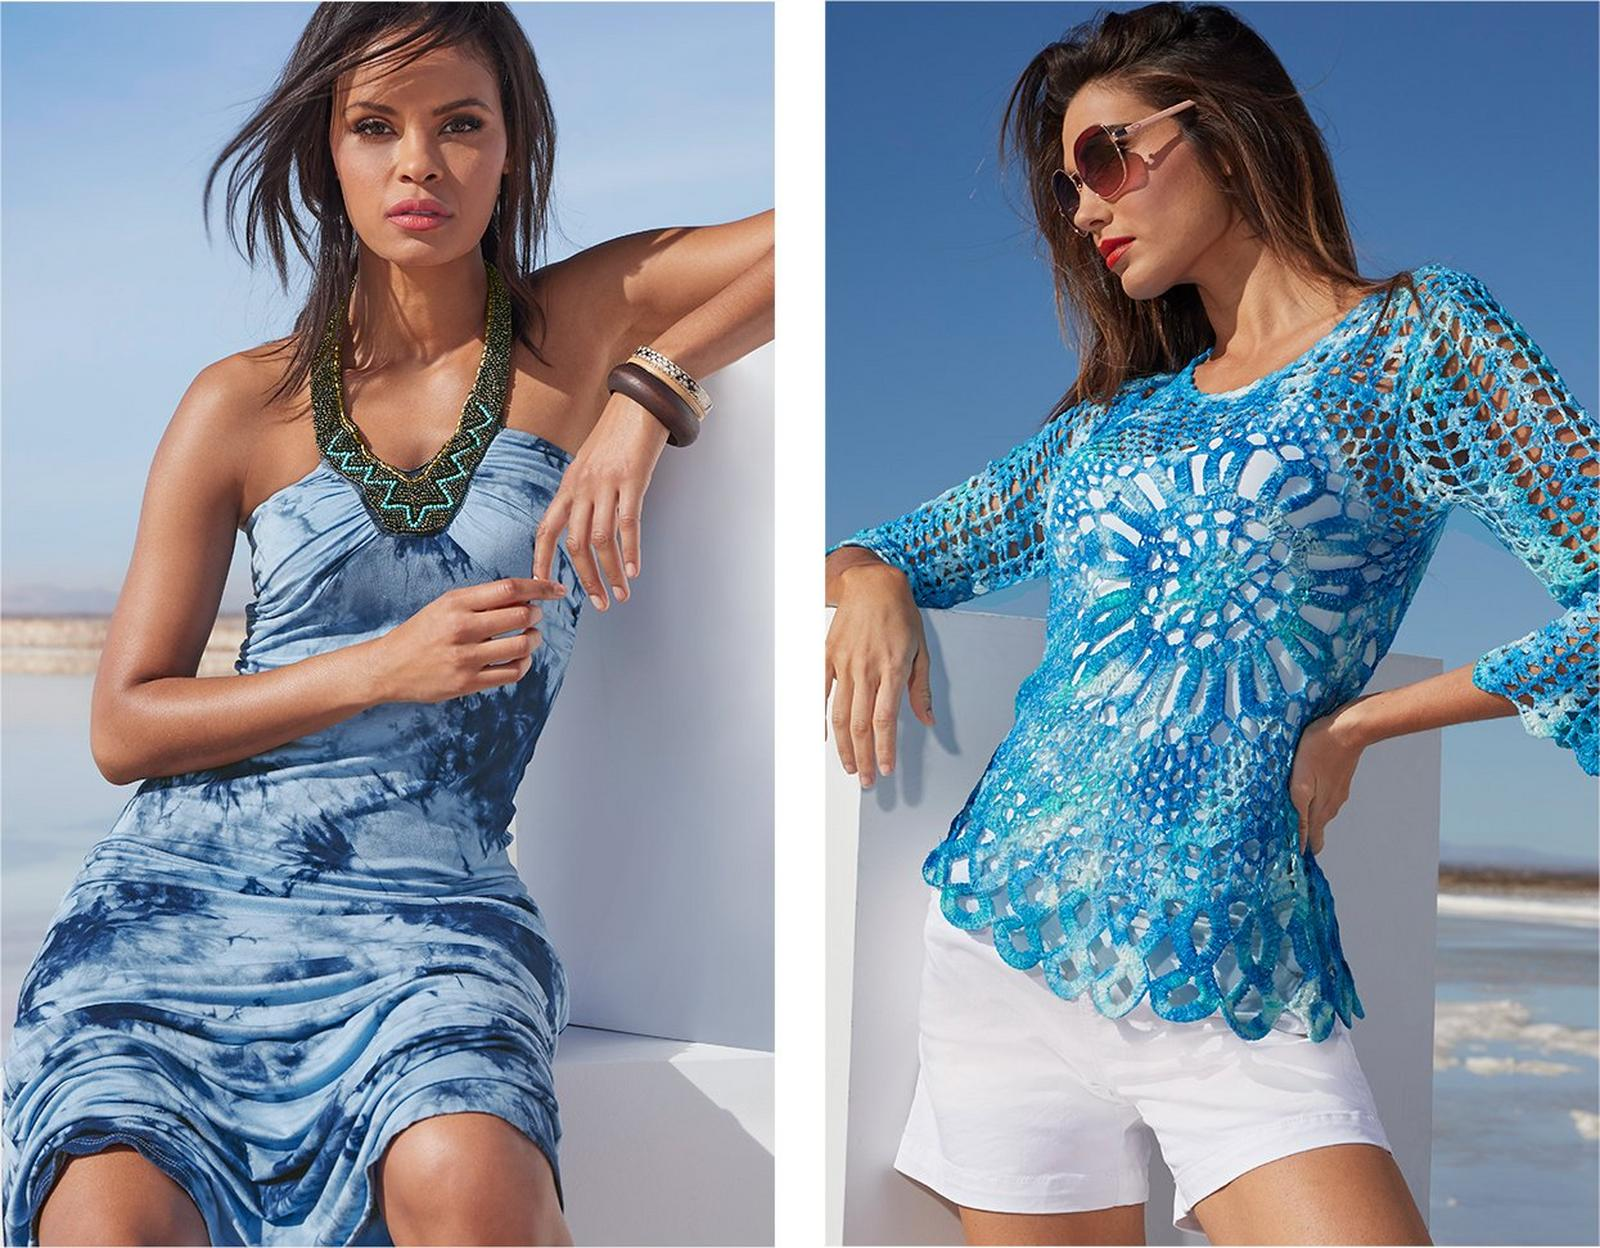 left model wearing a blue tie-dye maxi dress with an embellished neckline. right model wearing a blue crochet sweater, white tank top, white shorts, and sunglasses.